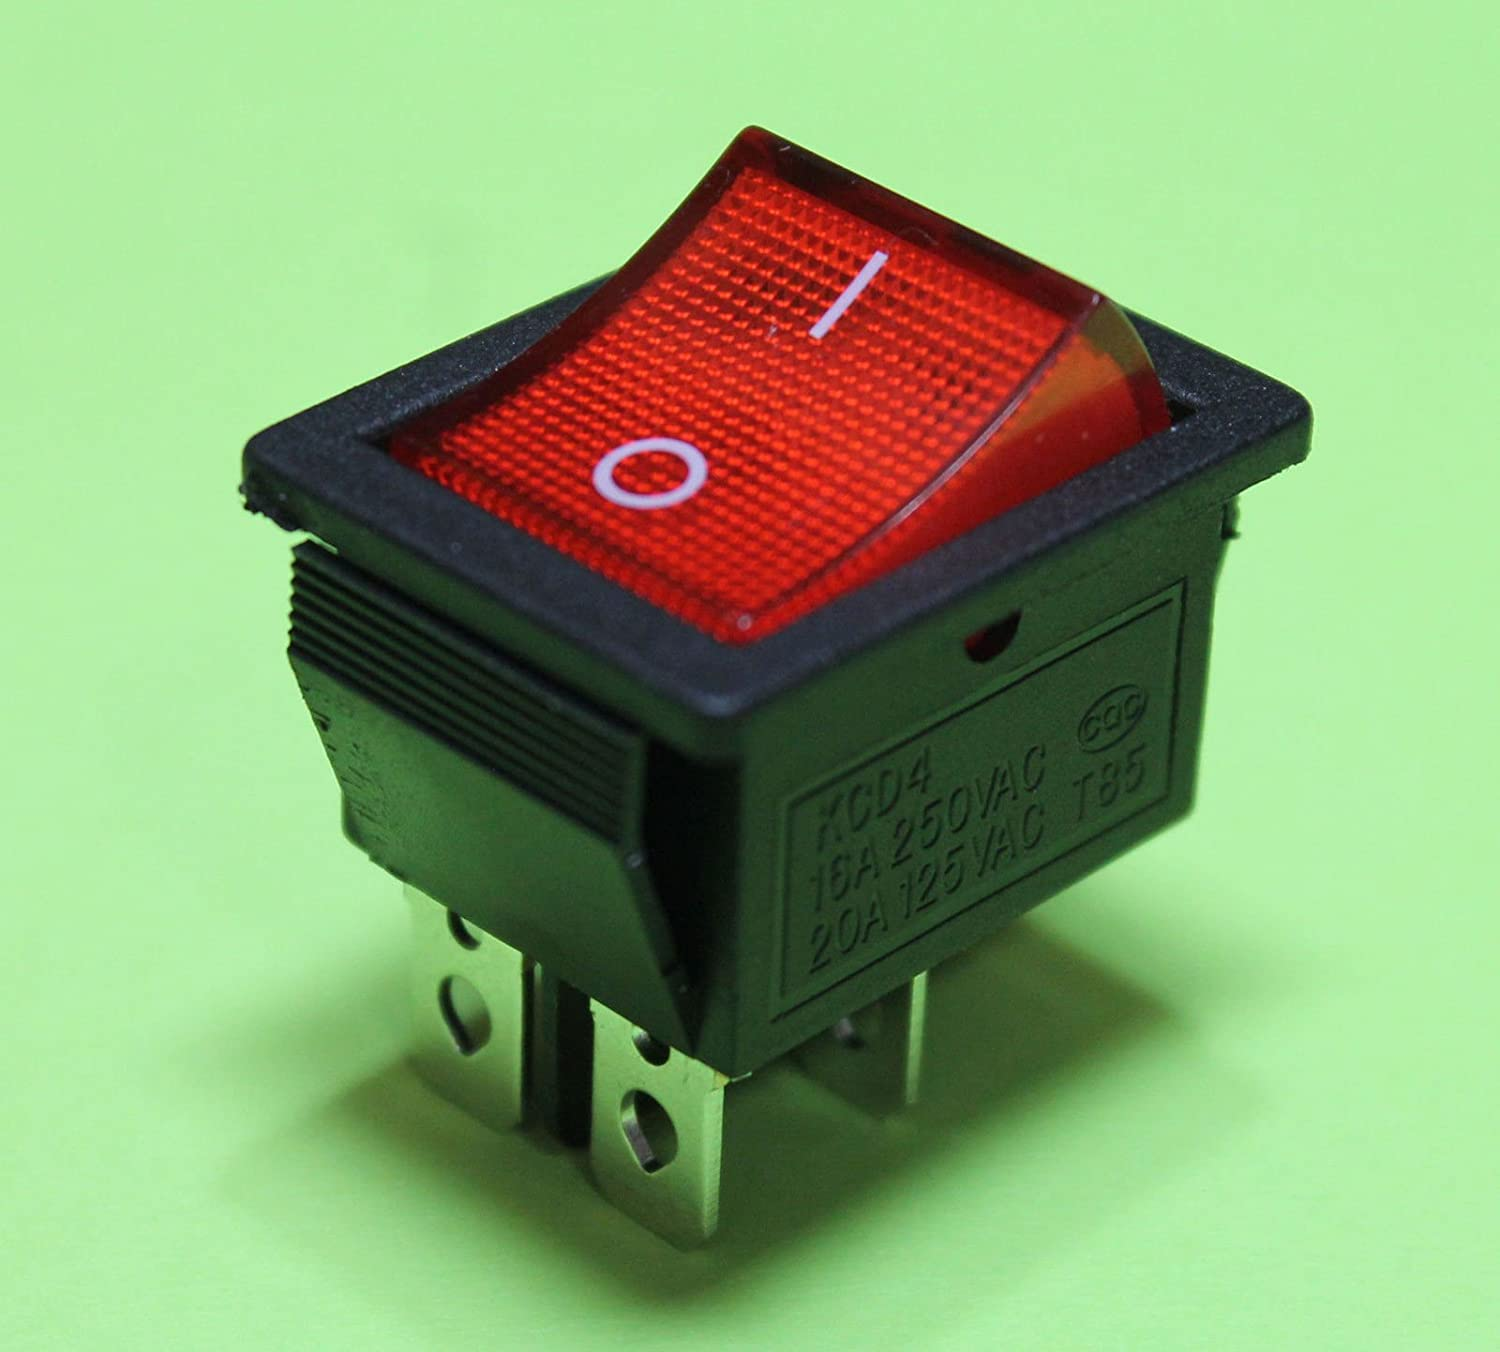 Red Light On Off Ac Rocker Switch 250v 15 Amp 125v 20a Dpst 4 Lug Dpdt Double Pole Throw With Terminals Industrial Scientific